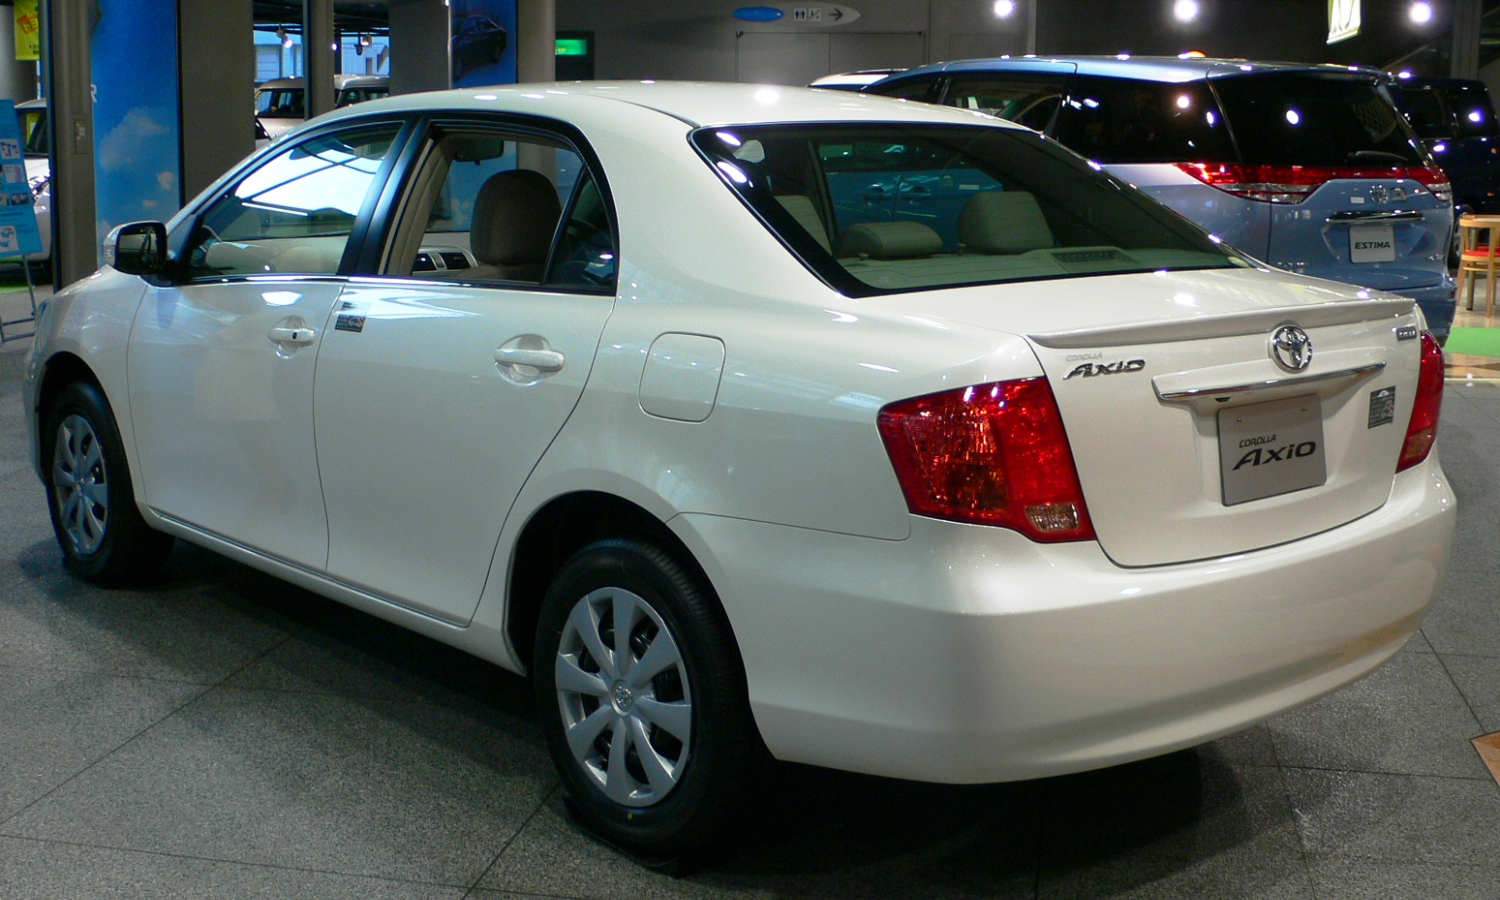 Toyota corolla axio 2008 photo - 3